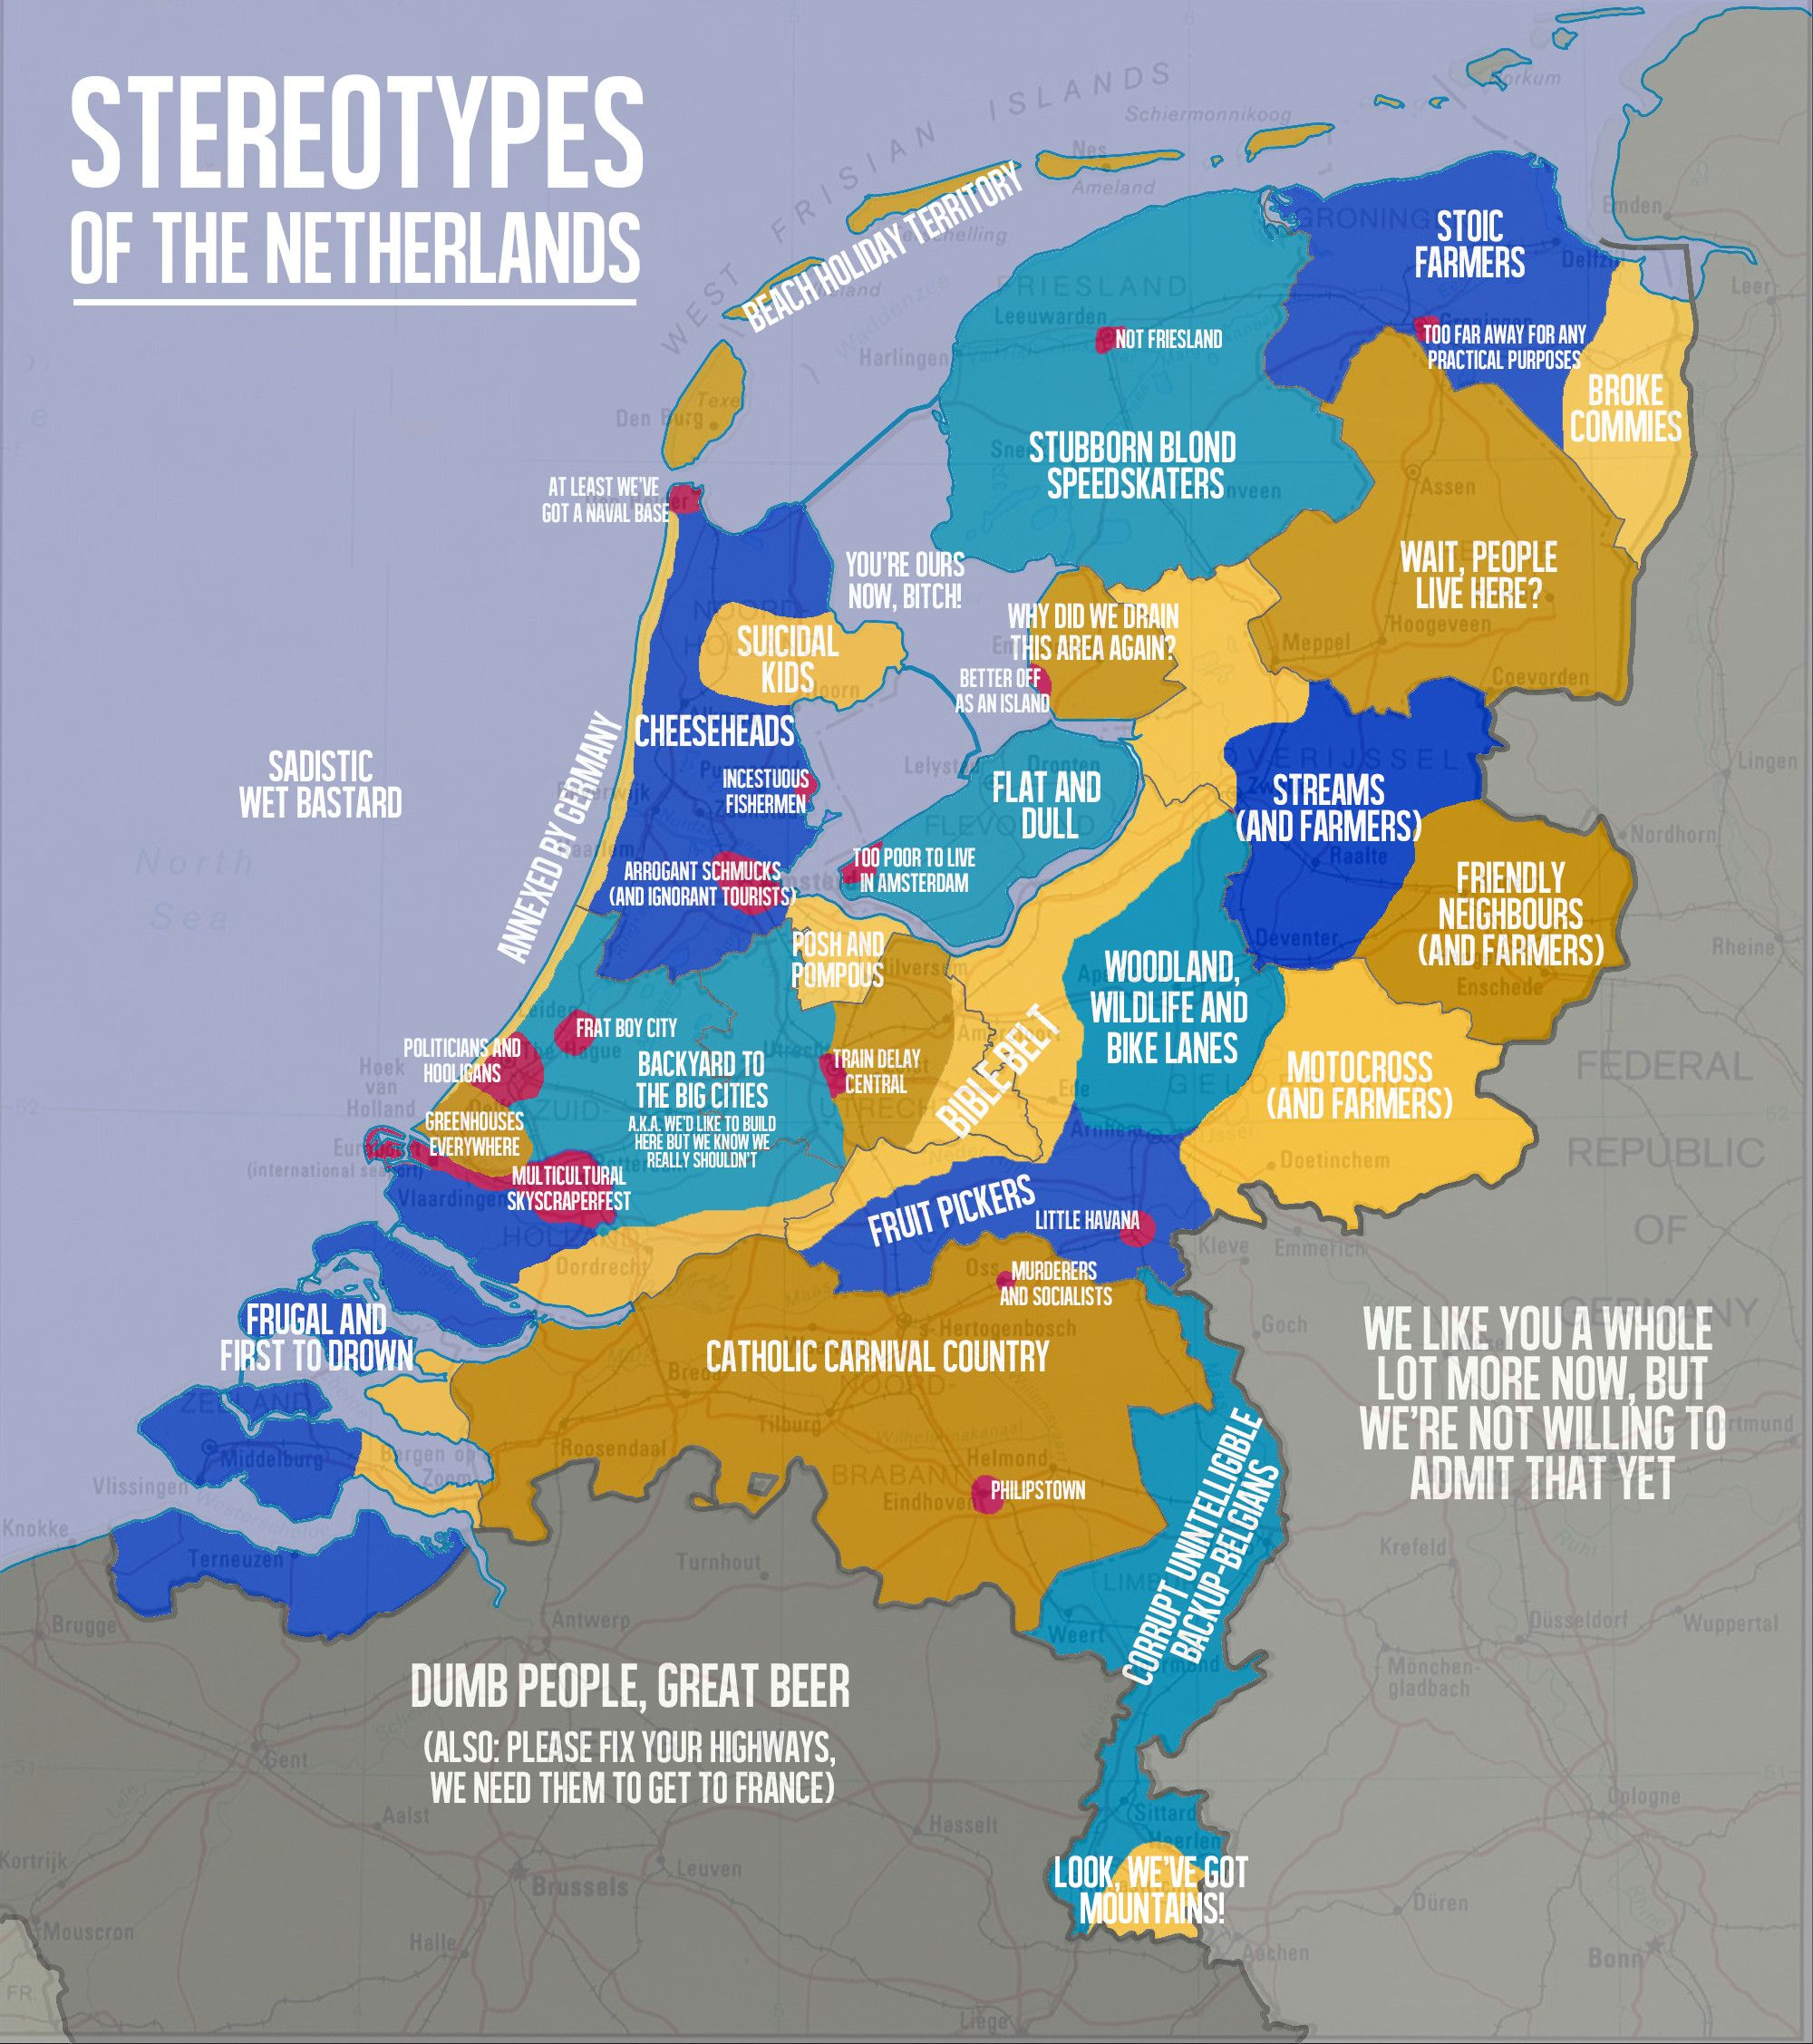 Stereotypes of the Netherlands Imgur Stereotypes